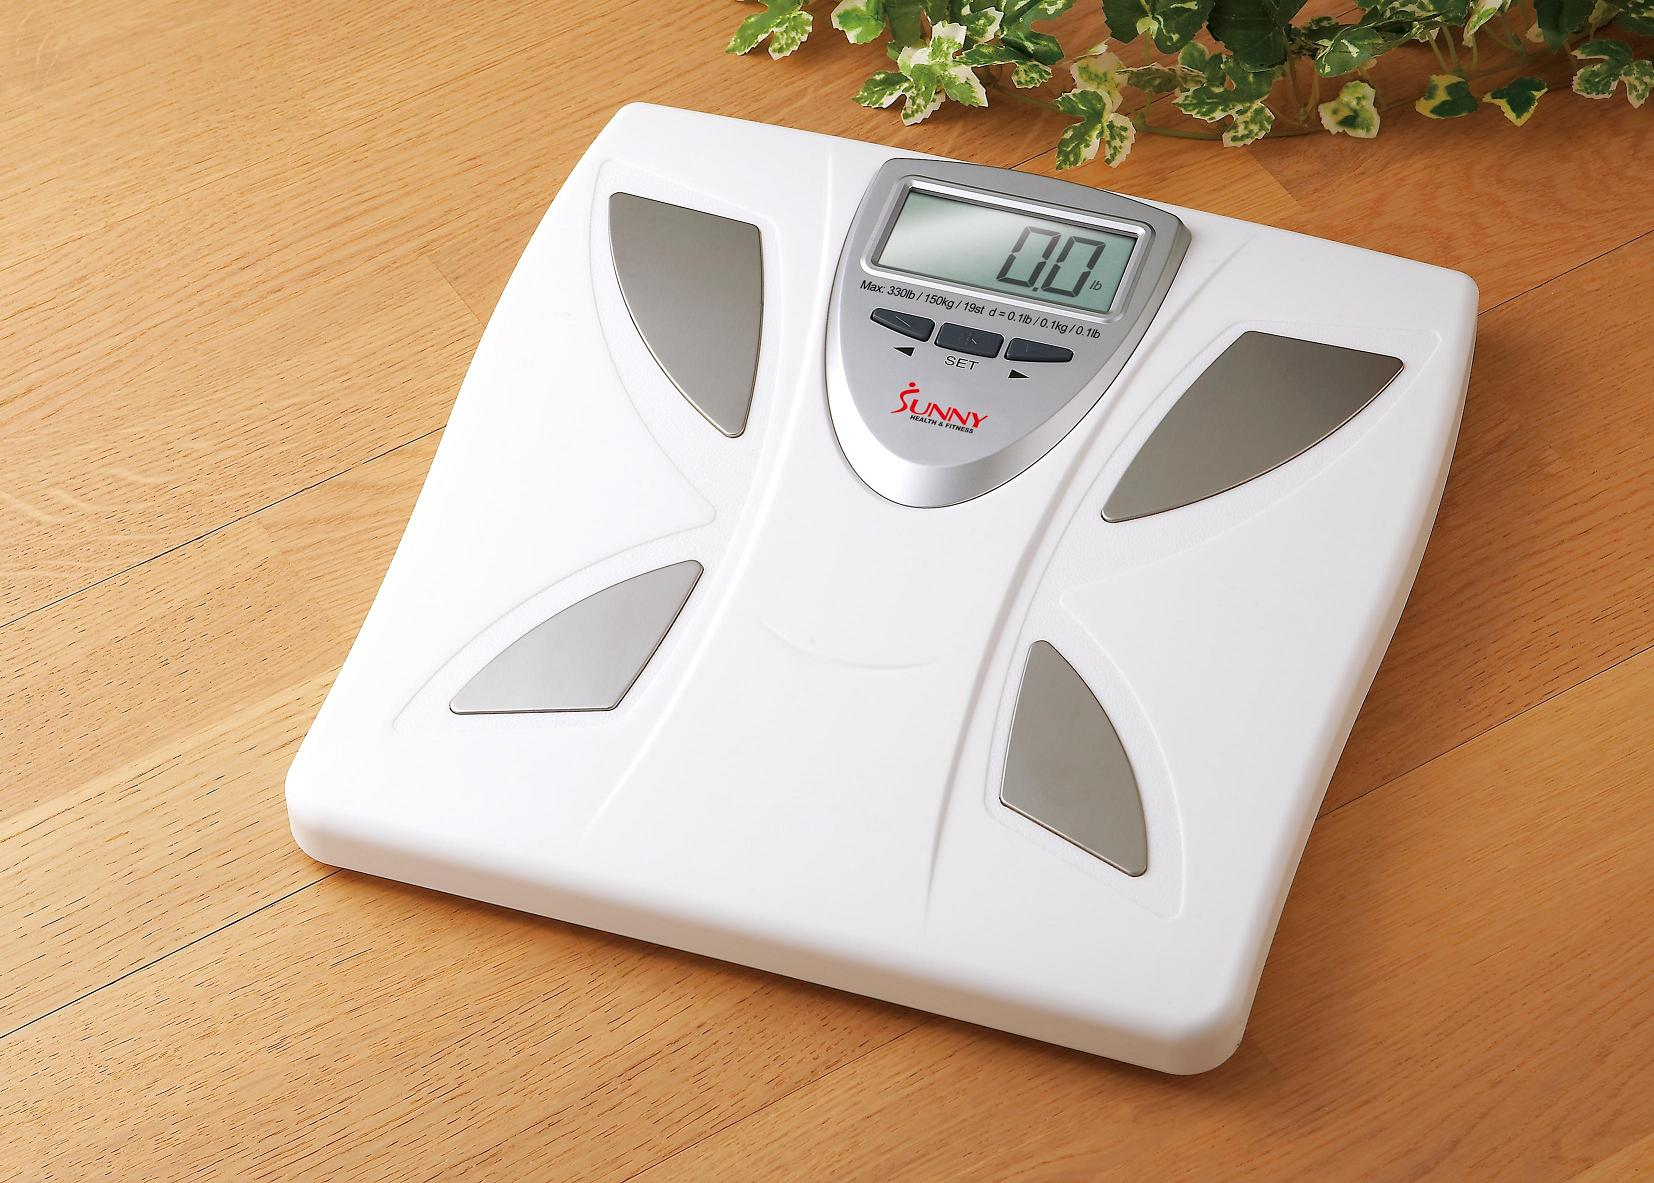 Sunny Body Composition Scale